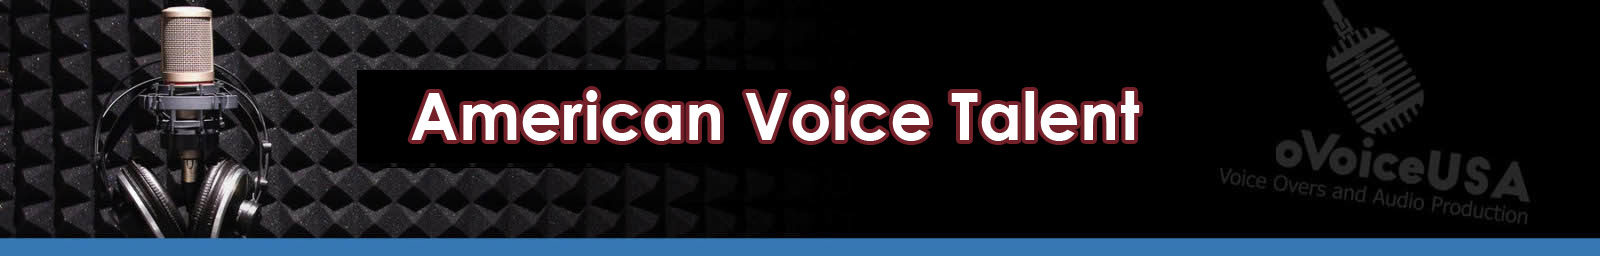 American Voice Talent